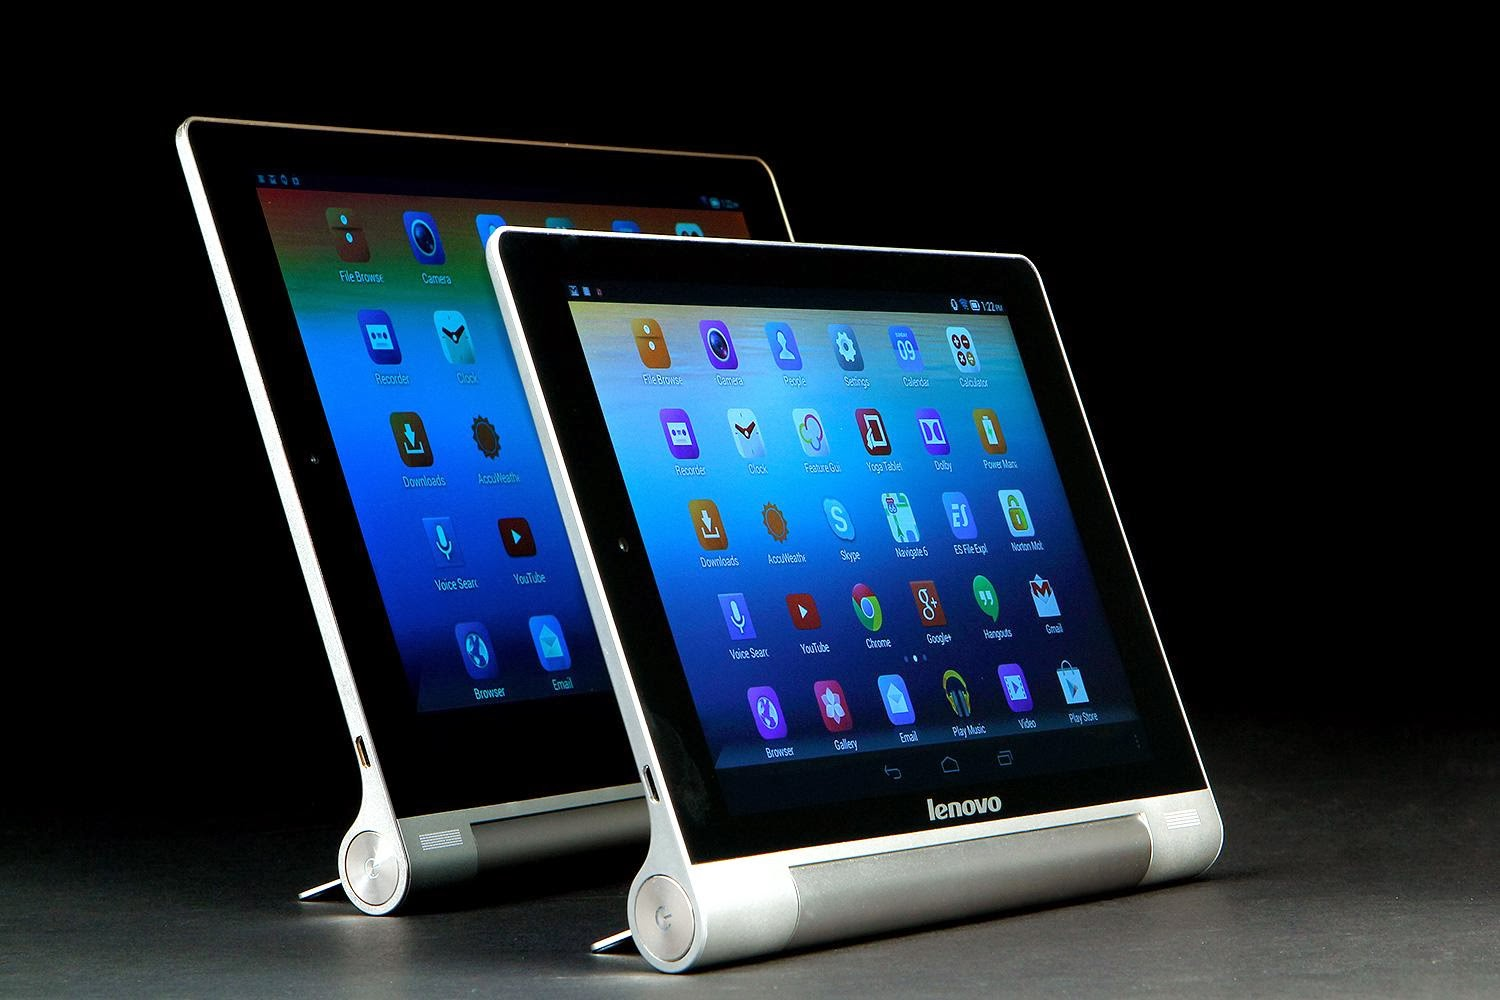 Lenovo Yoga Tablet 10 with Android JellyBean Os |TechGangs